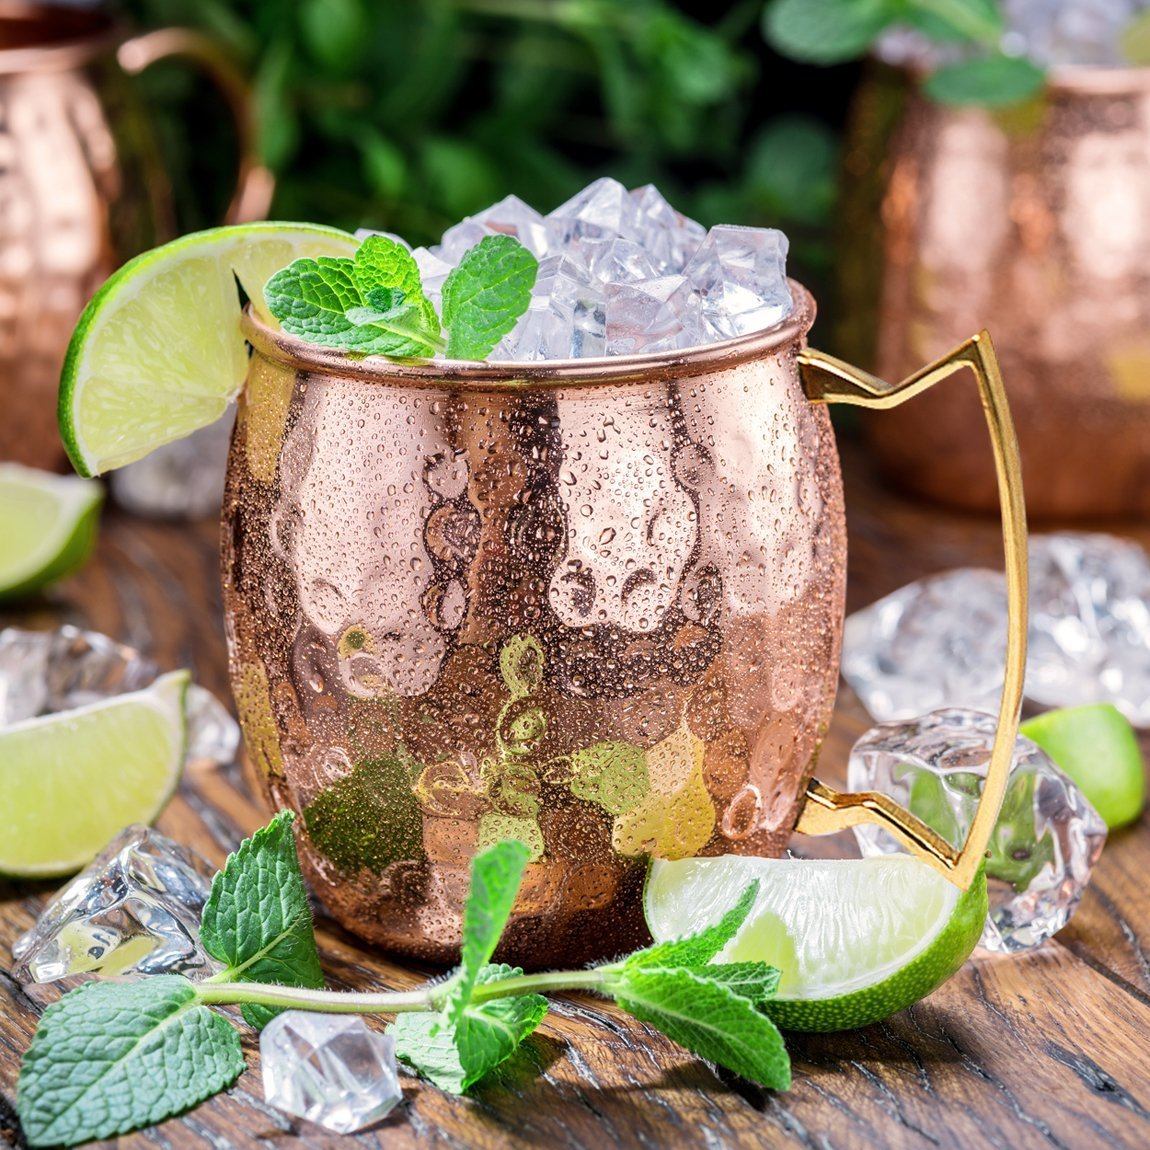 Moscow Mule Copper Mugs - Set of 4-100% HANDCRAFTED - Food Safe Pure Solid Copper Mugs - 16 oz Gift Set with BONUS: Highest Quality Cocktail Copper Straws and Jigger! by Benicci (Image #9)